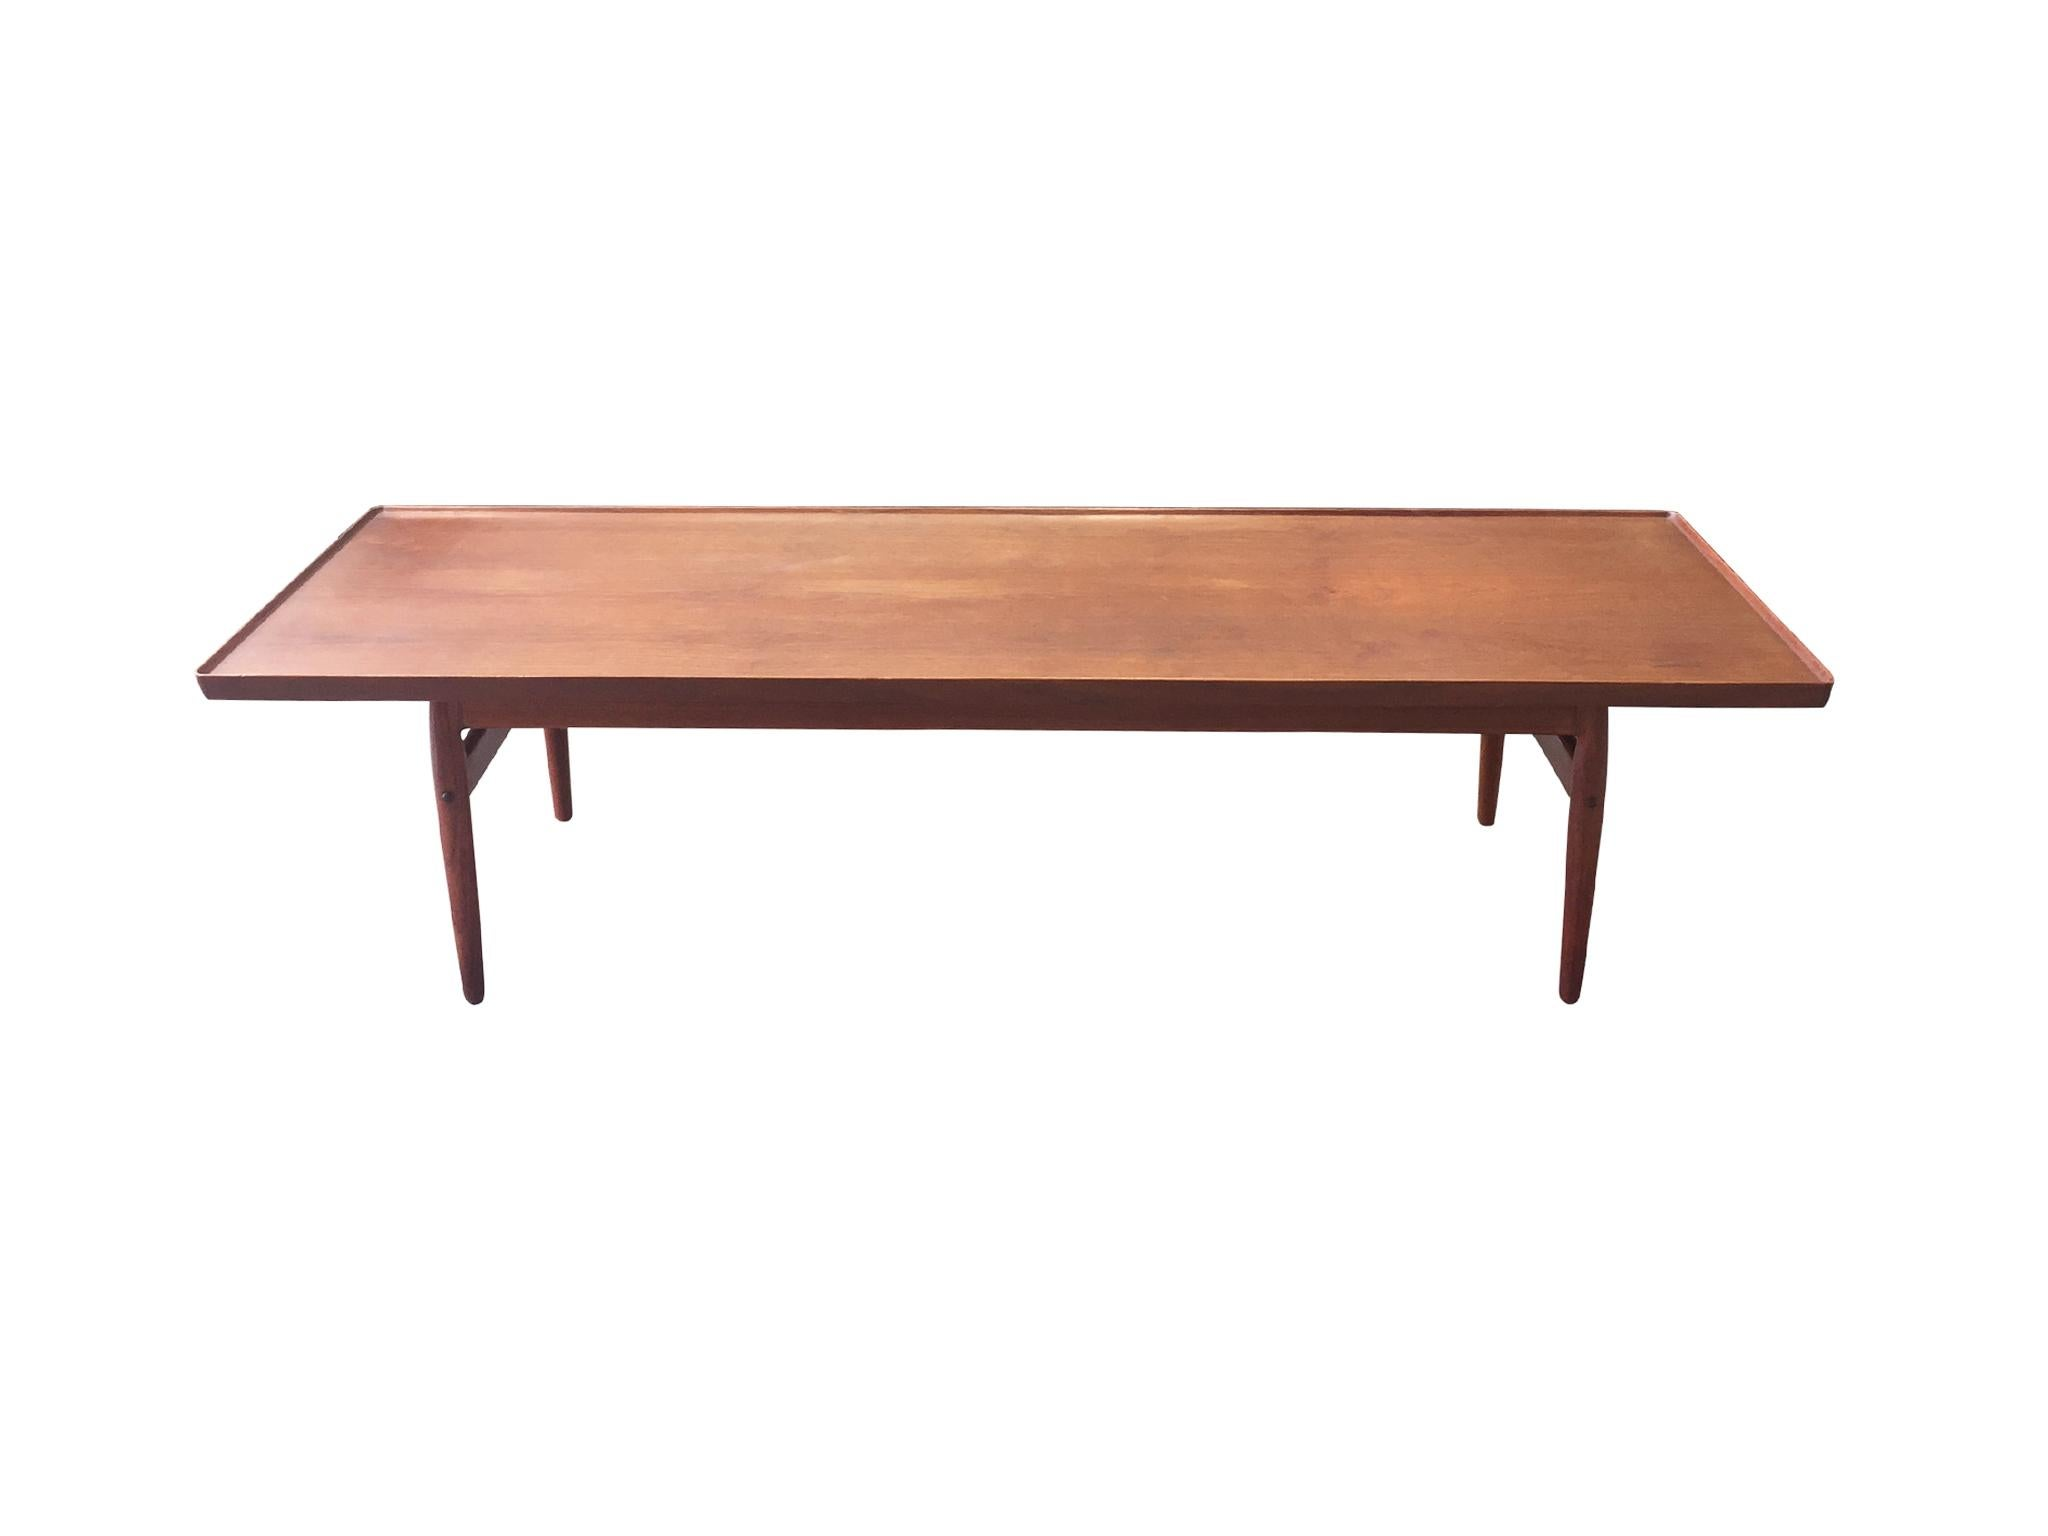 Midcentury Danish Modern Teak Coffee Table At 1stdibs